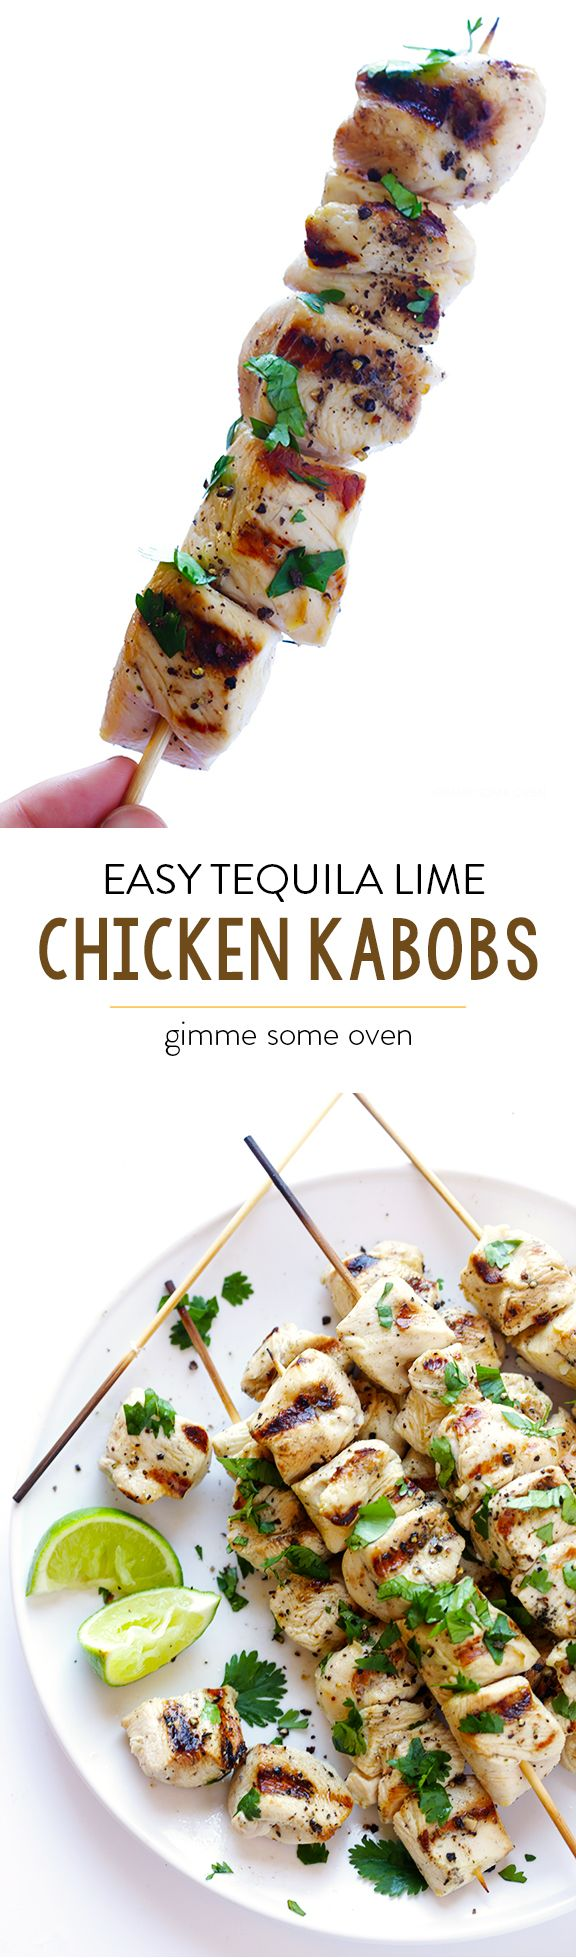 Easy Tequila Lime Chicken Kabobs Quick And Easy To Prepare And Perfect For